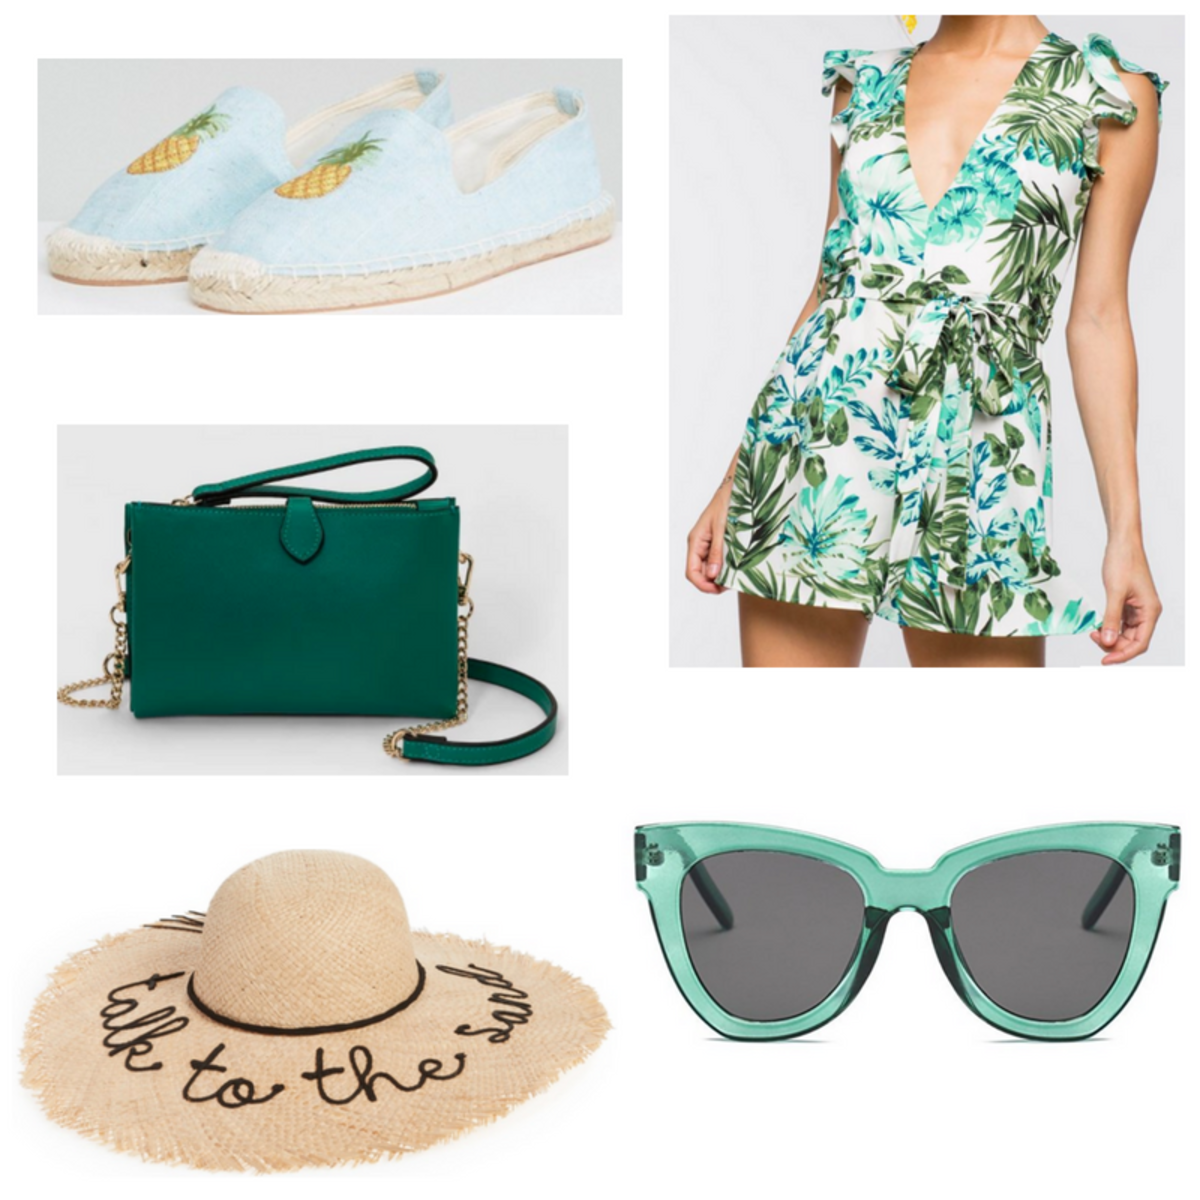 2933508fa46 Here s Exactly How to Style a Floppy Sun Hat This Summer - College Fashion